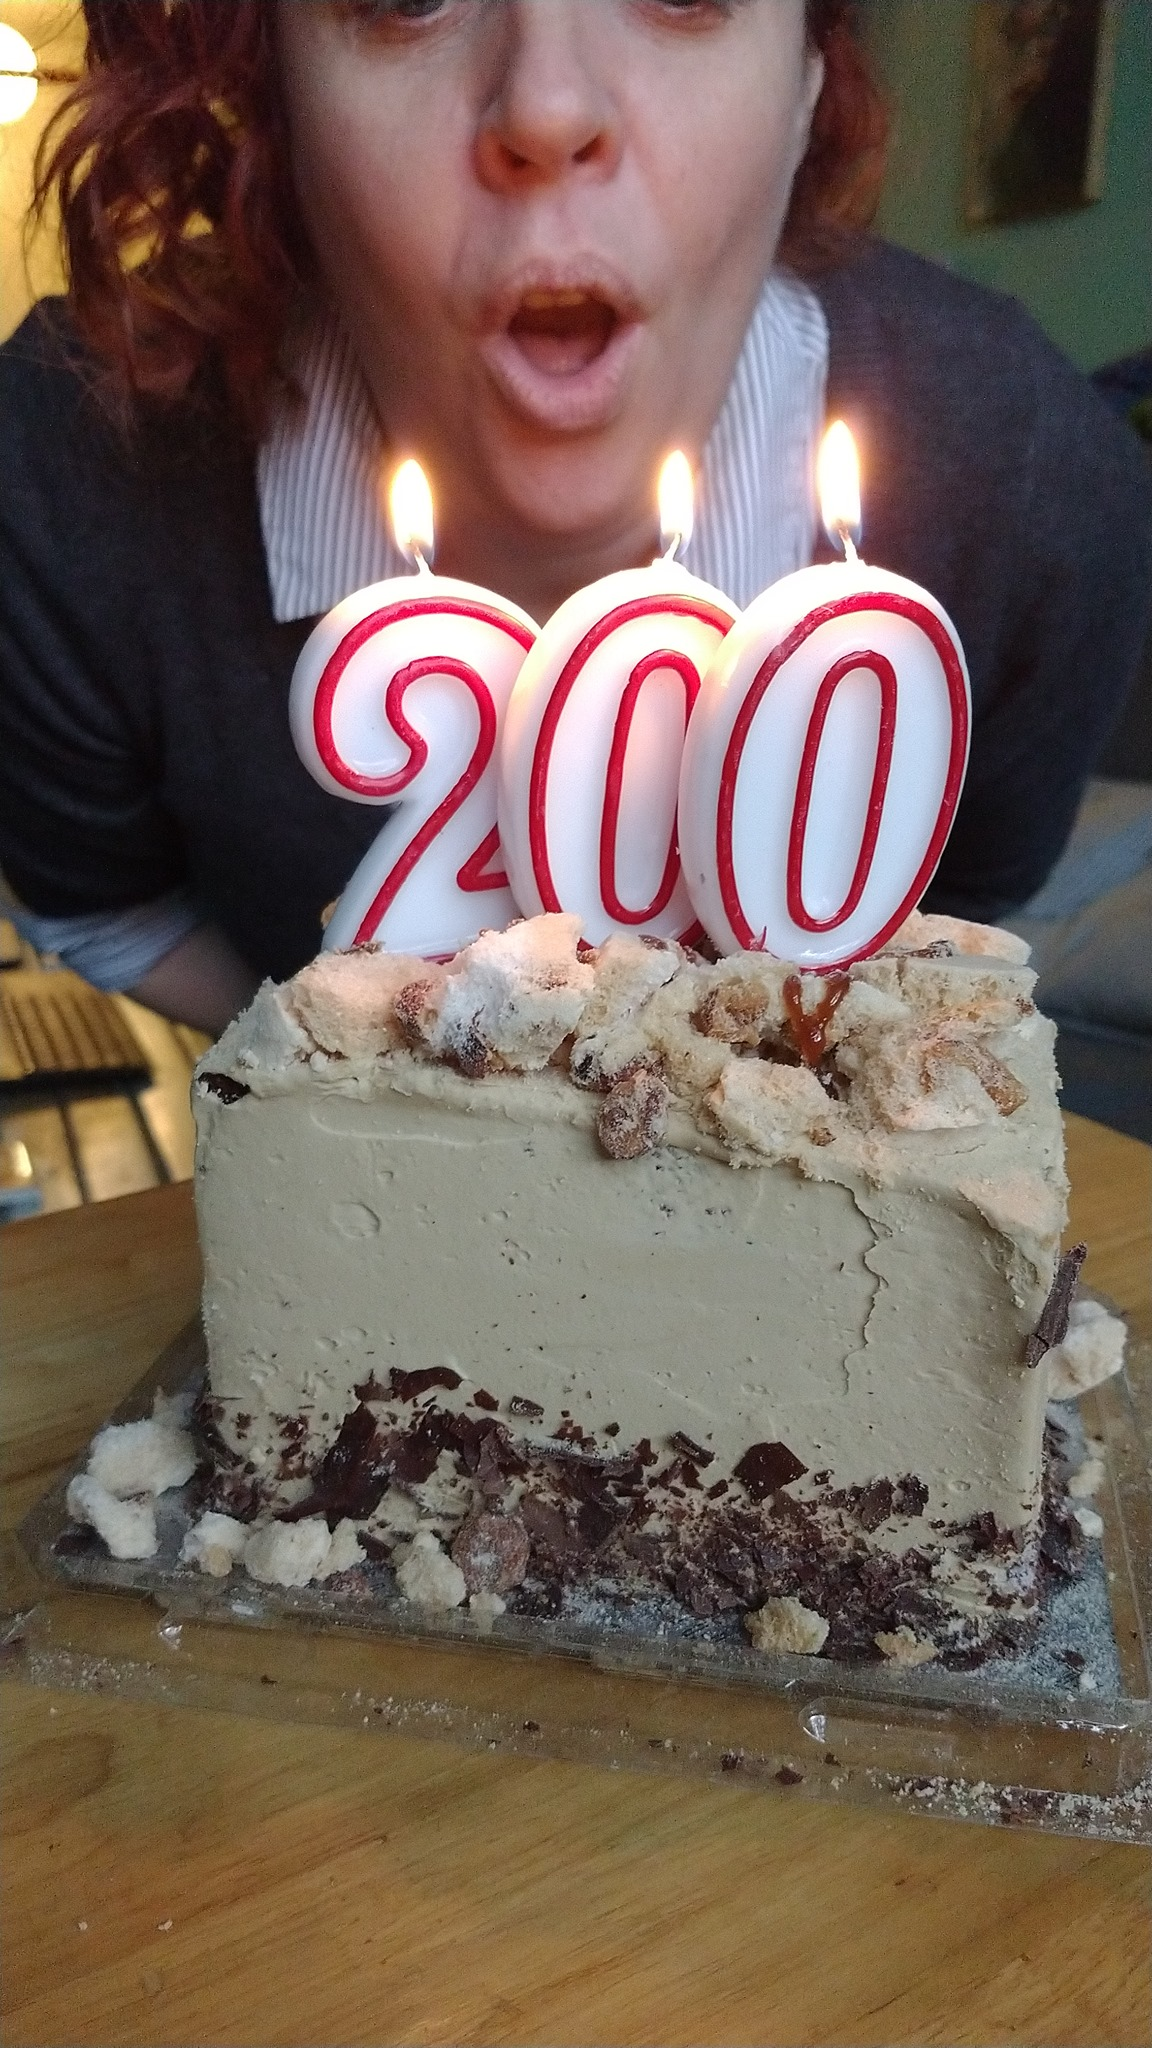 Blowing out candles in the shape of the number 200.